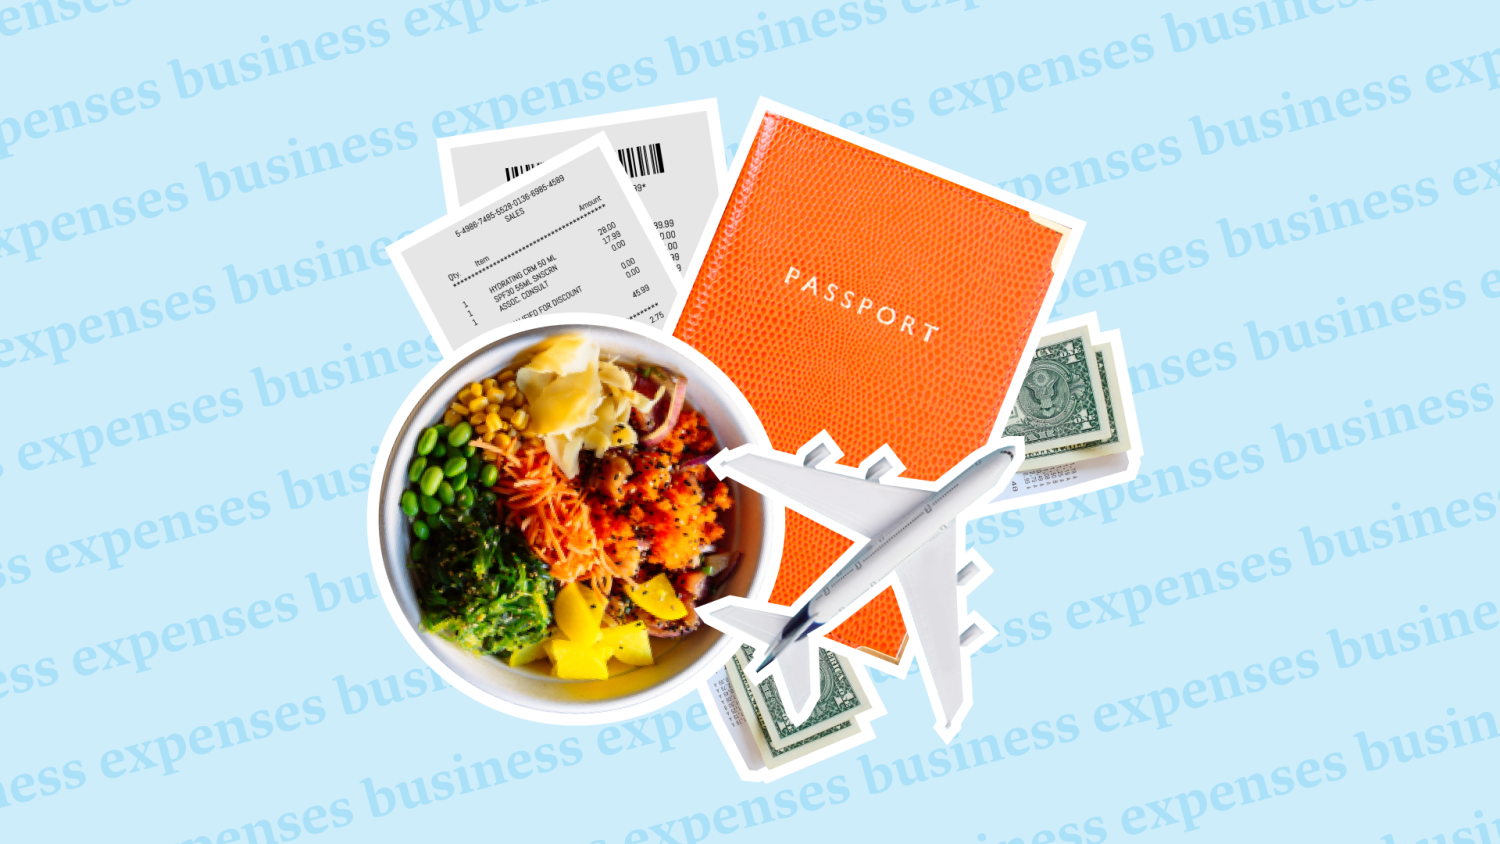 How to set up expense reimbursements for your small business.